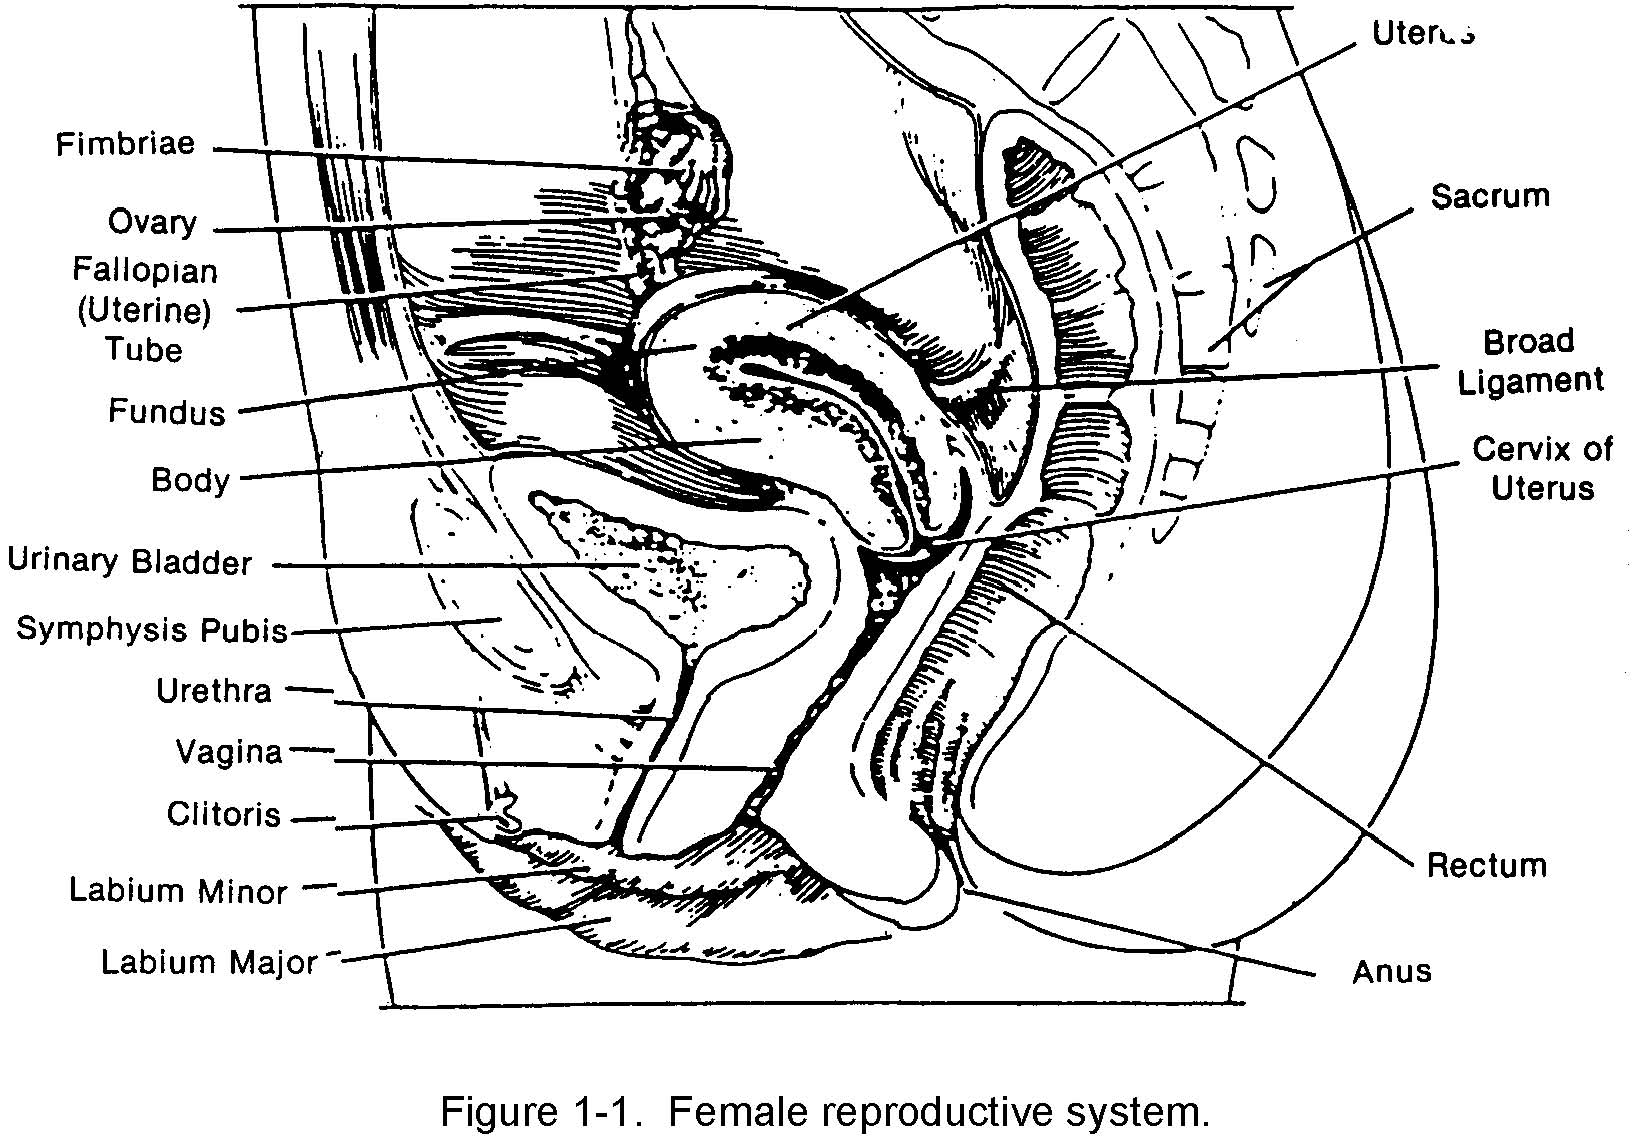 Diagram Labelled Diagram Of Female Reproductive System